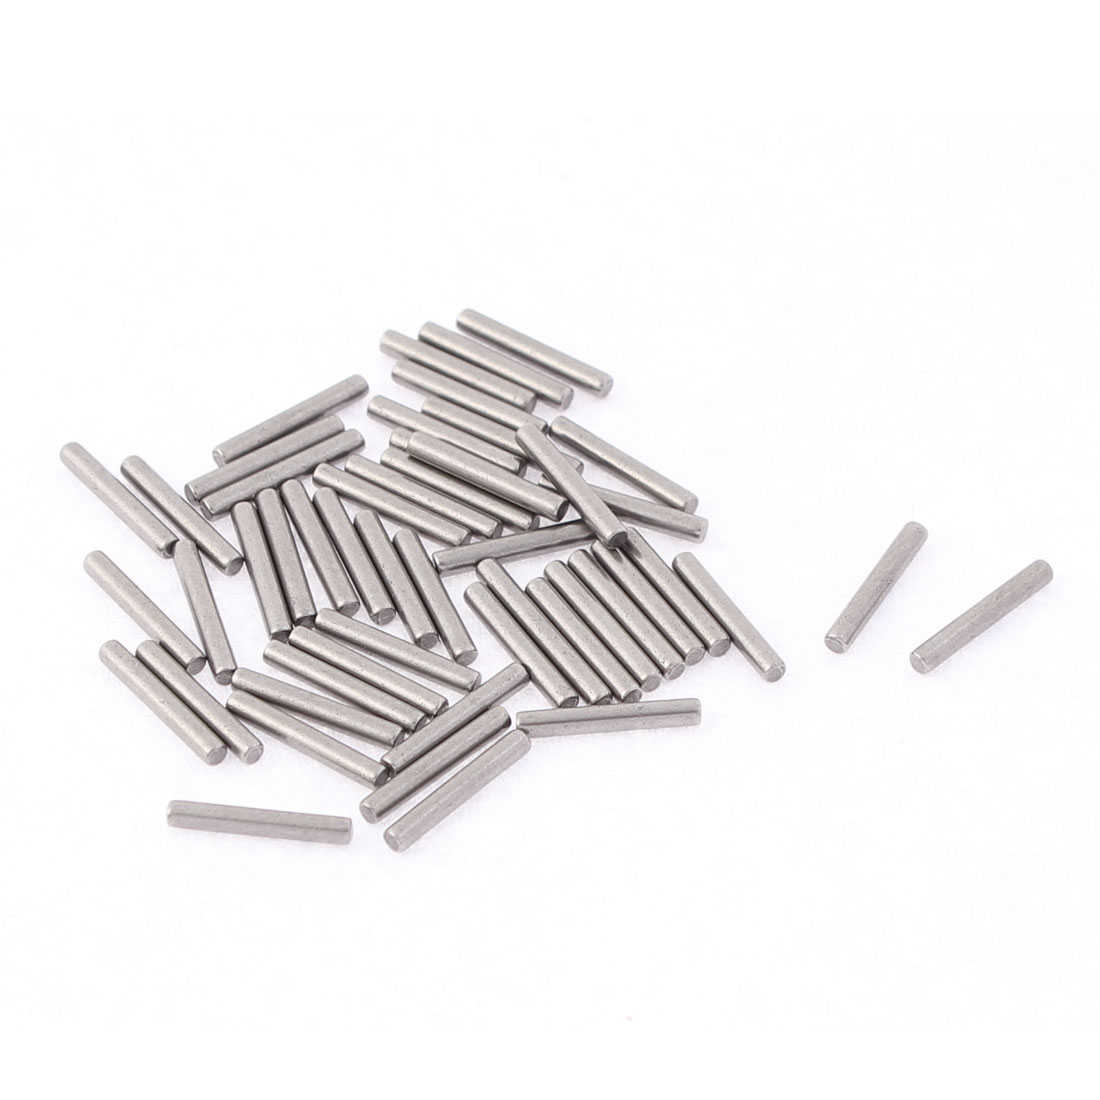 M1.5x10mm Stainless Steel Straight Retaining Dowel Pins Fasten Elements 50pcs